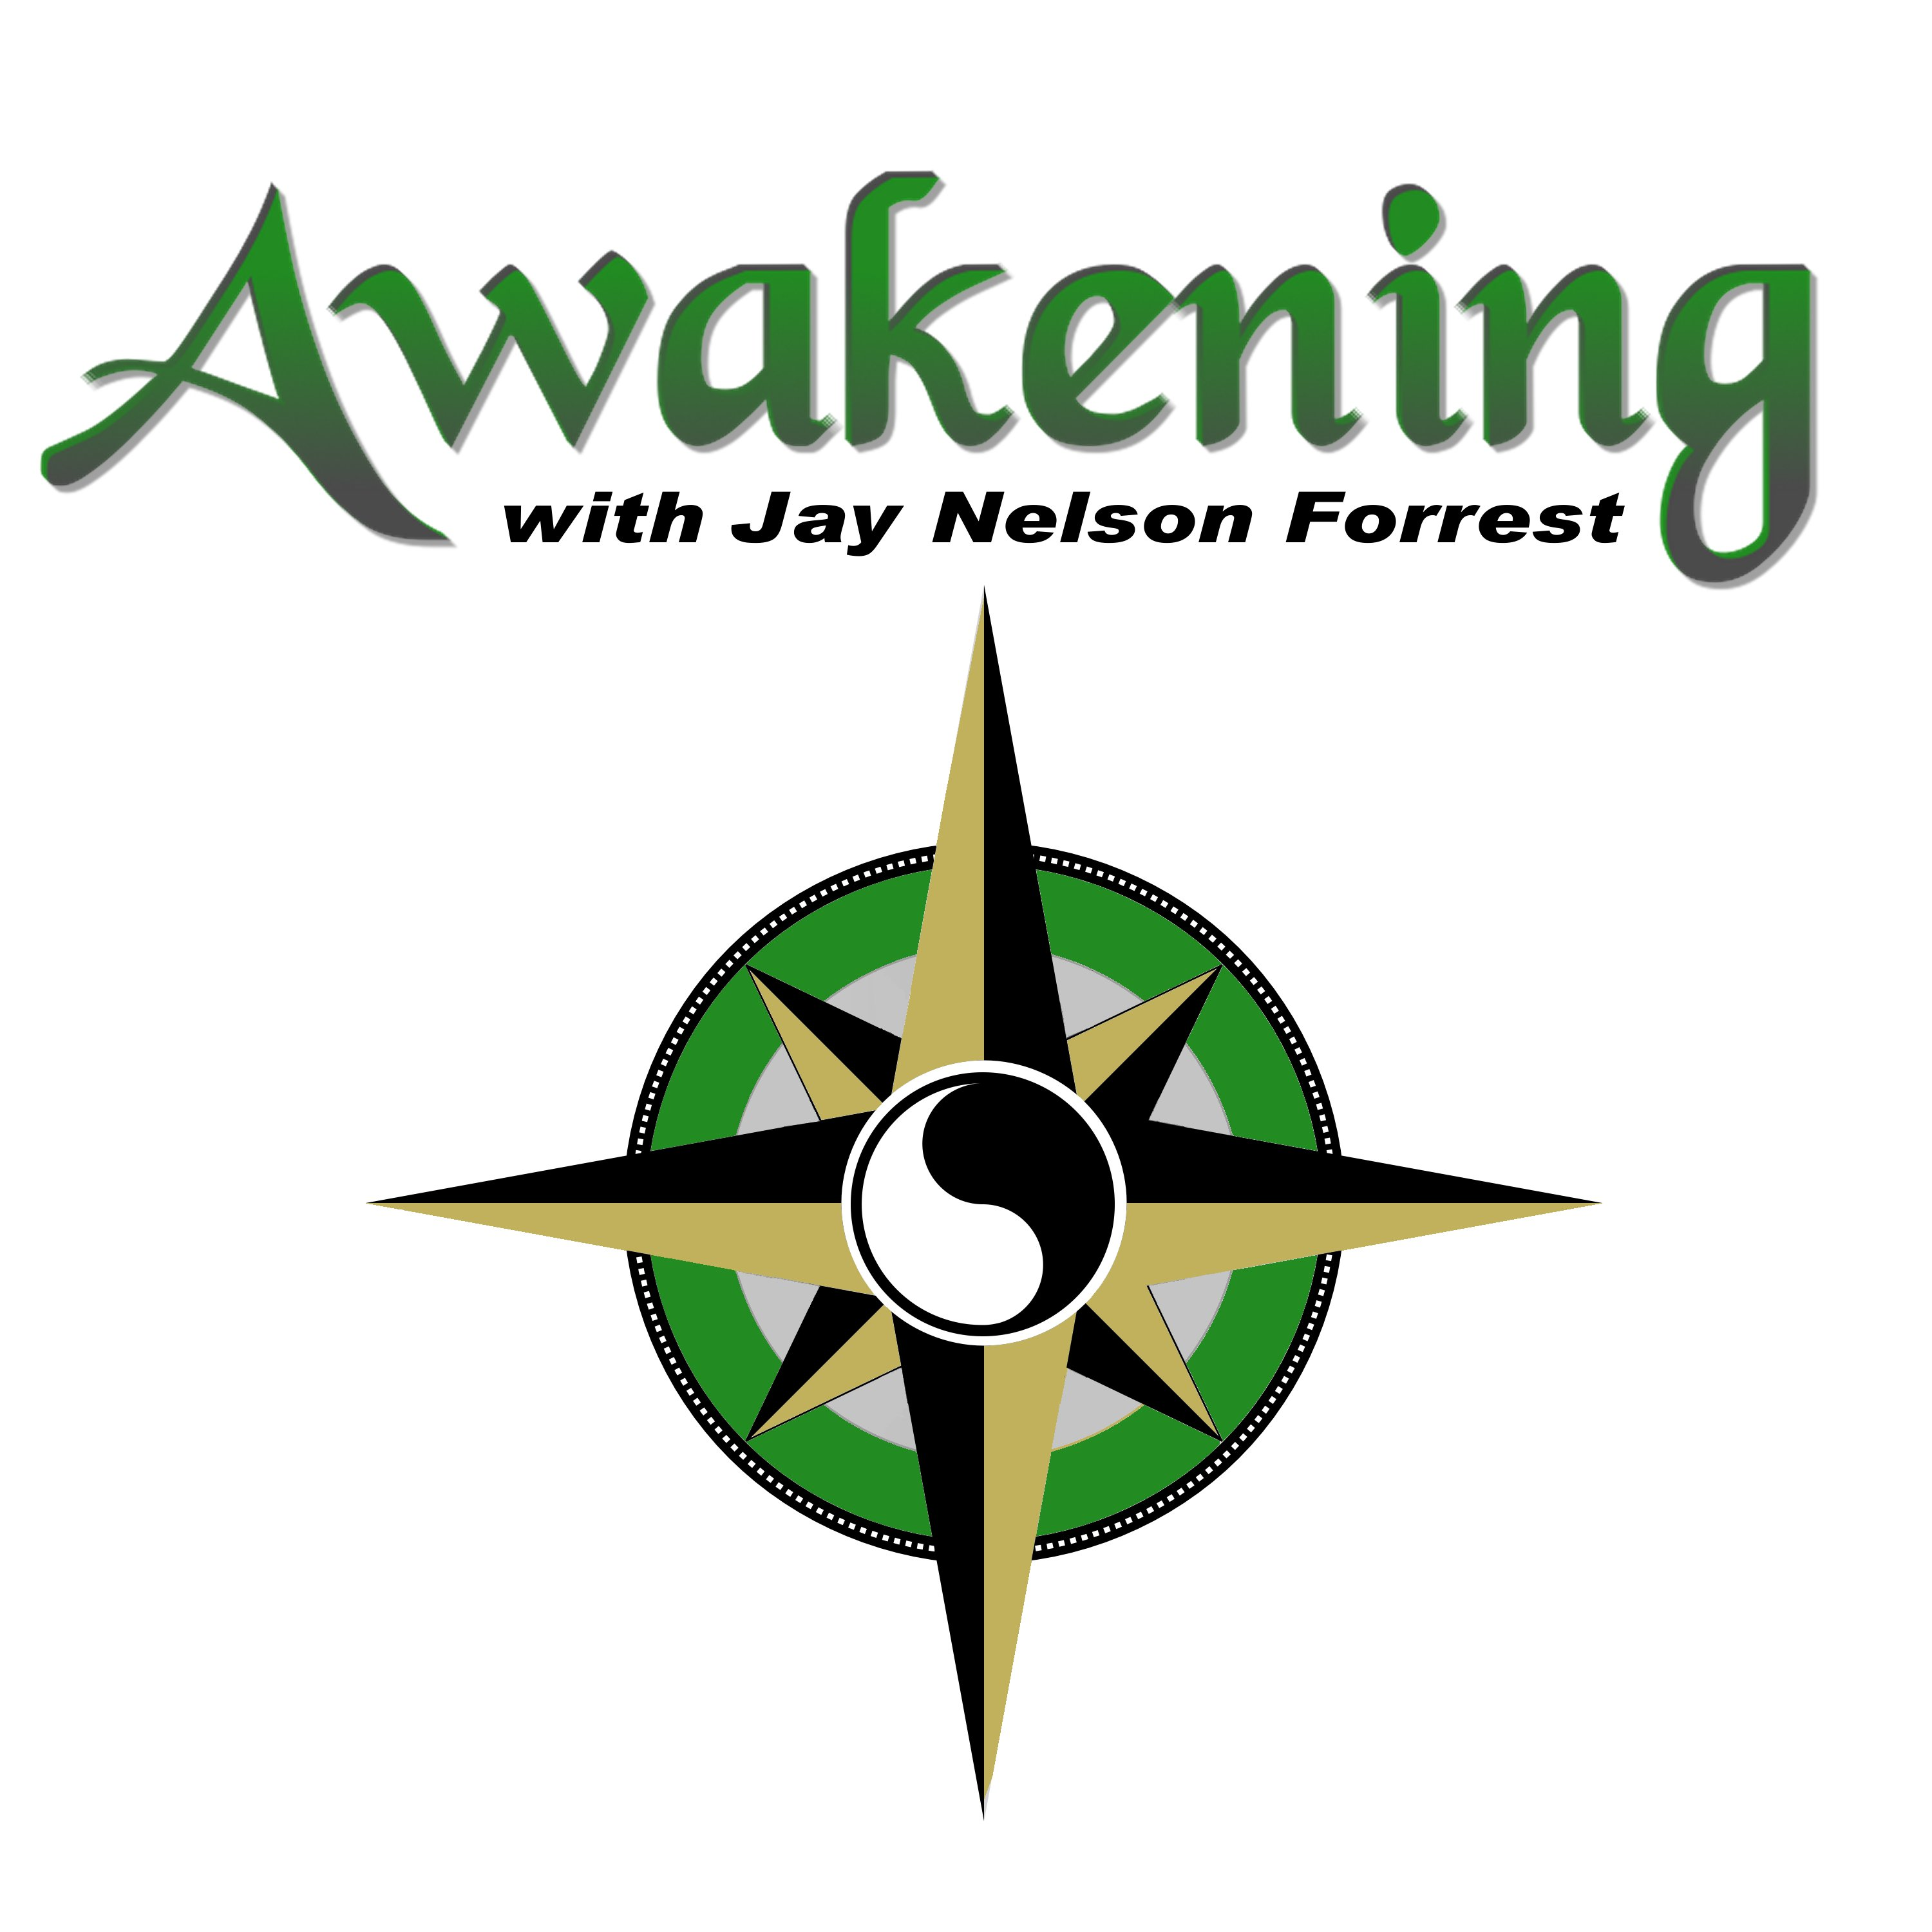 Awakening with Jay Nelson Forrest